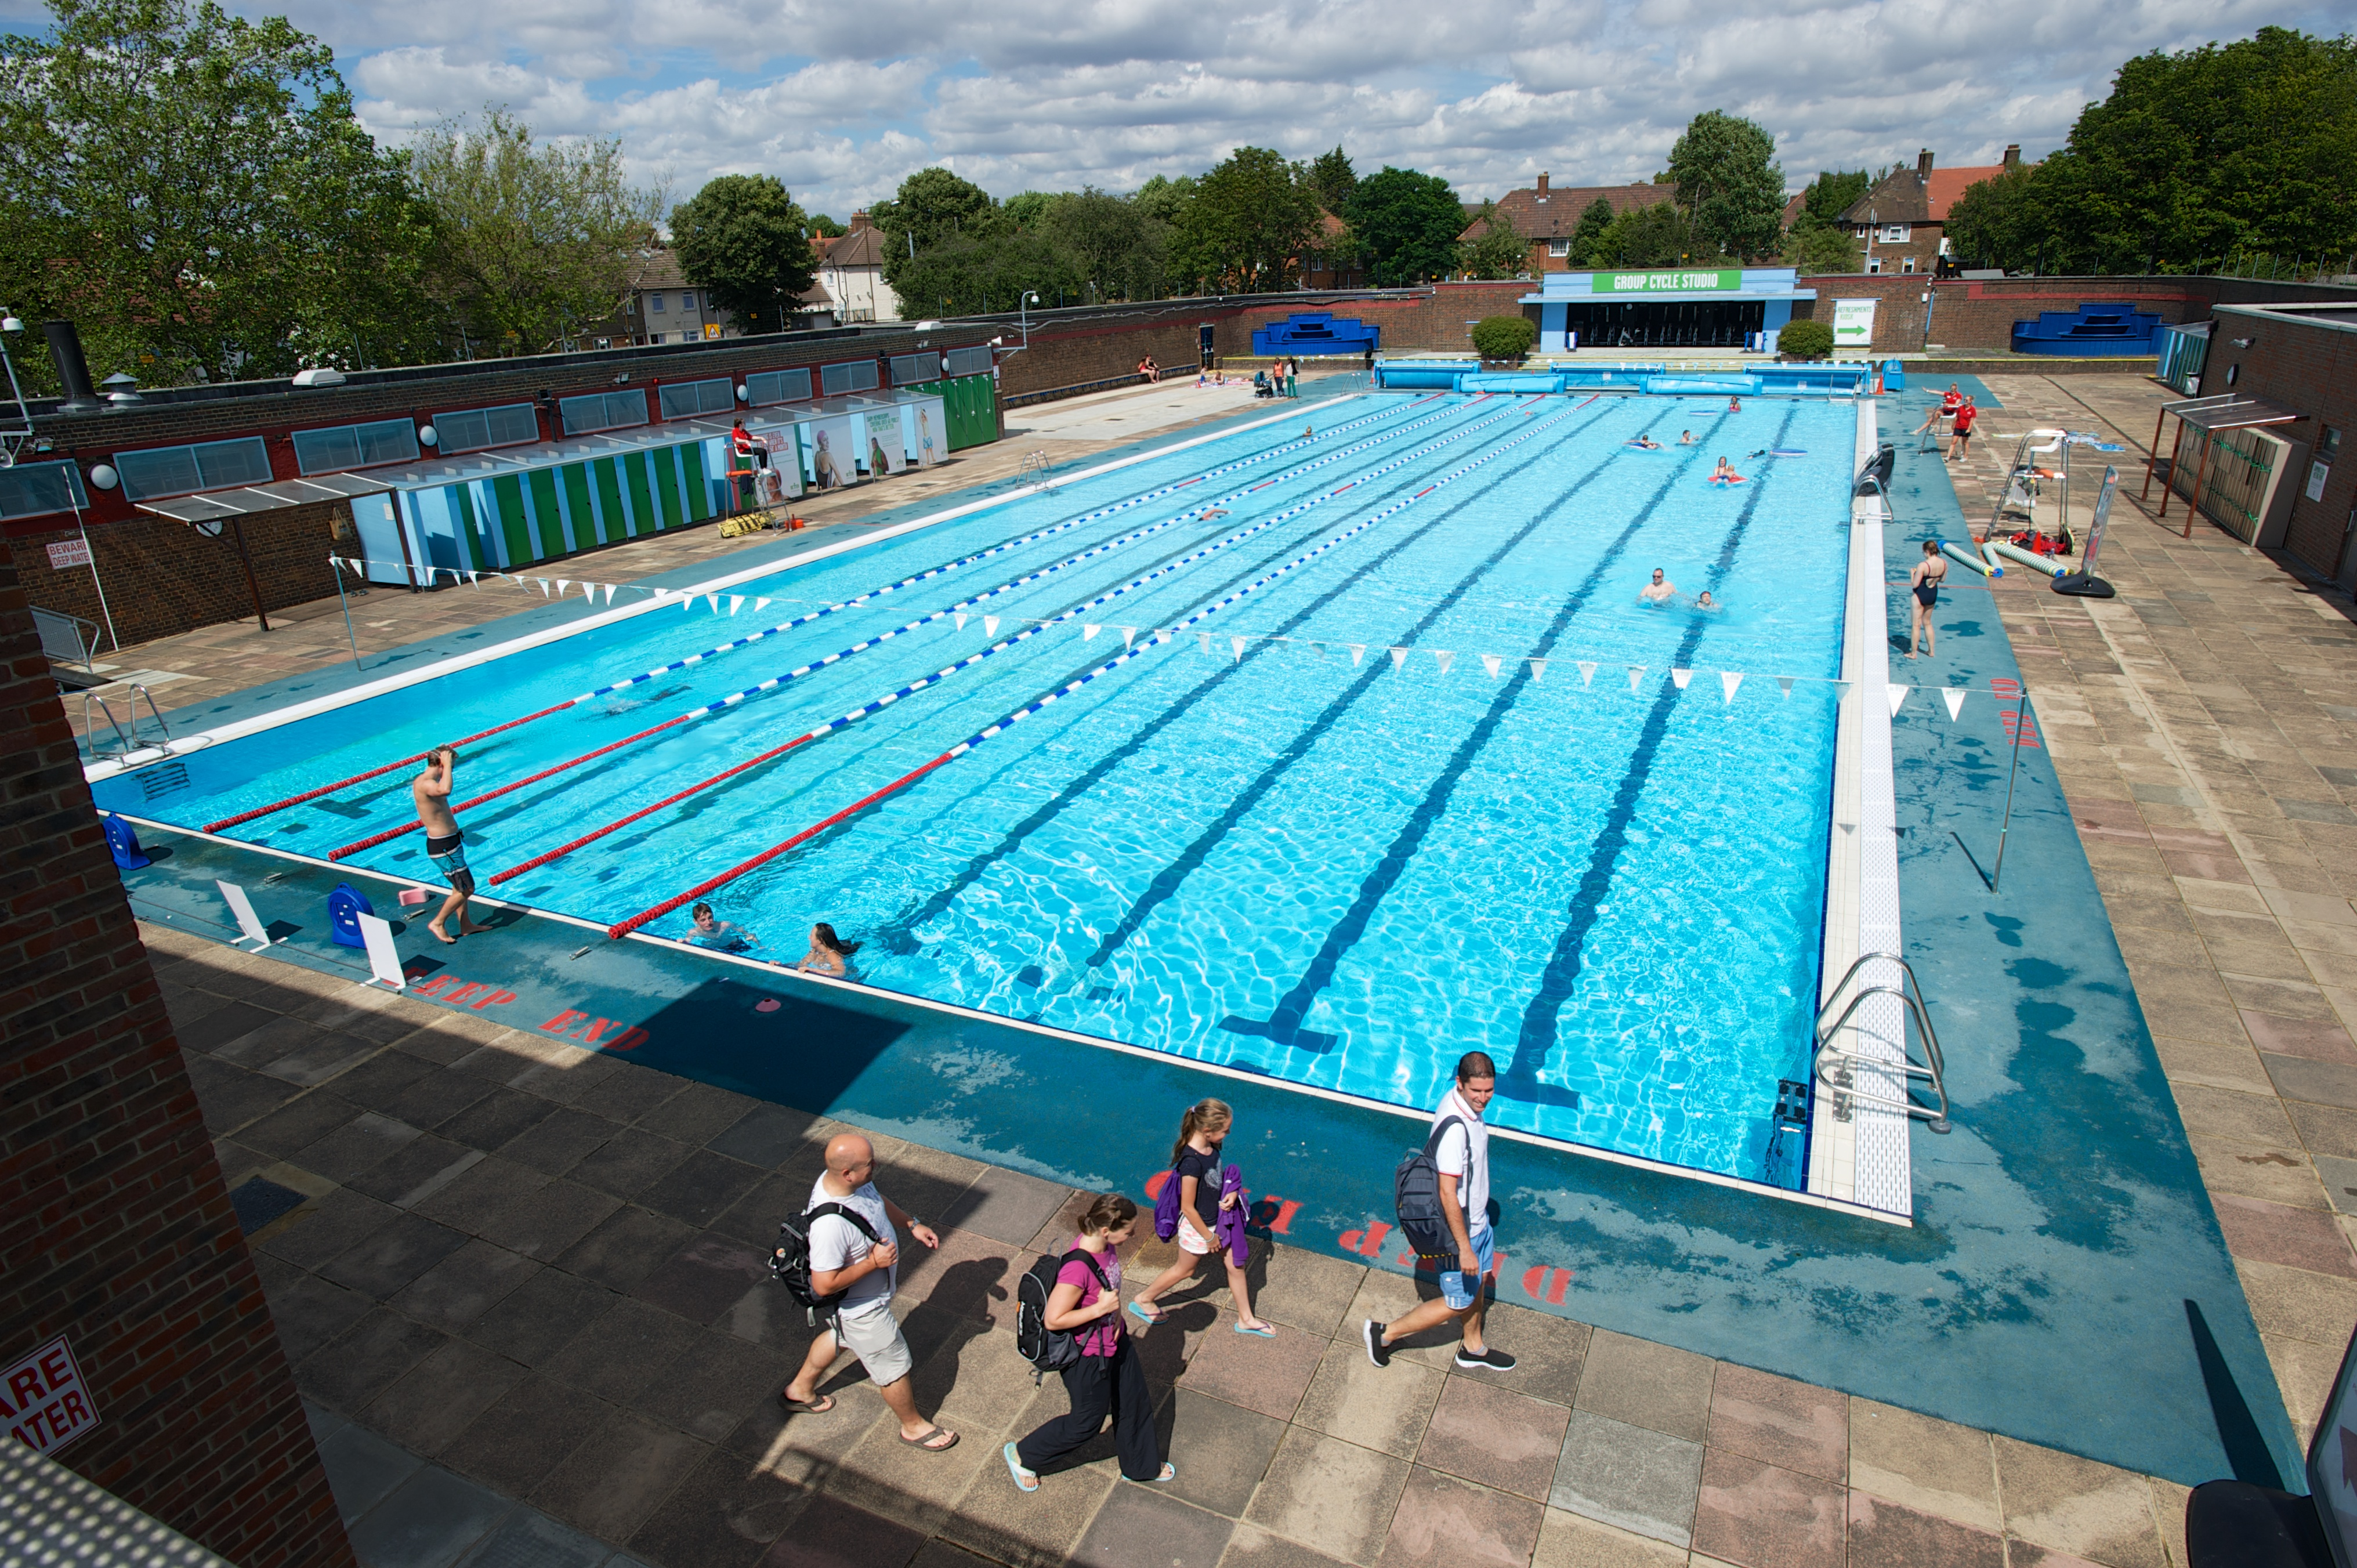 Charlton Lido Lifestyle Club Refresh New Cafe Reopened Members Sun Terrace Outdoor Pool